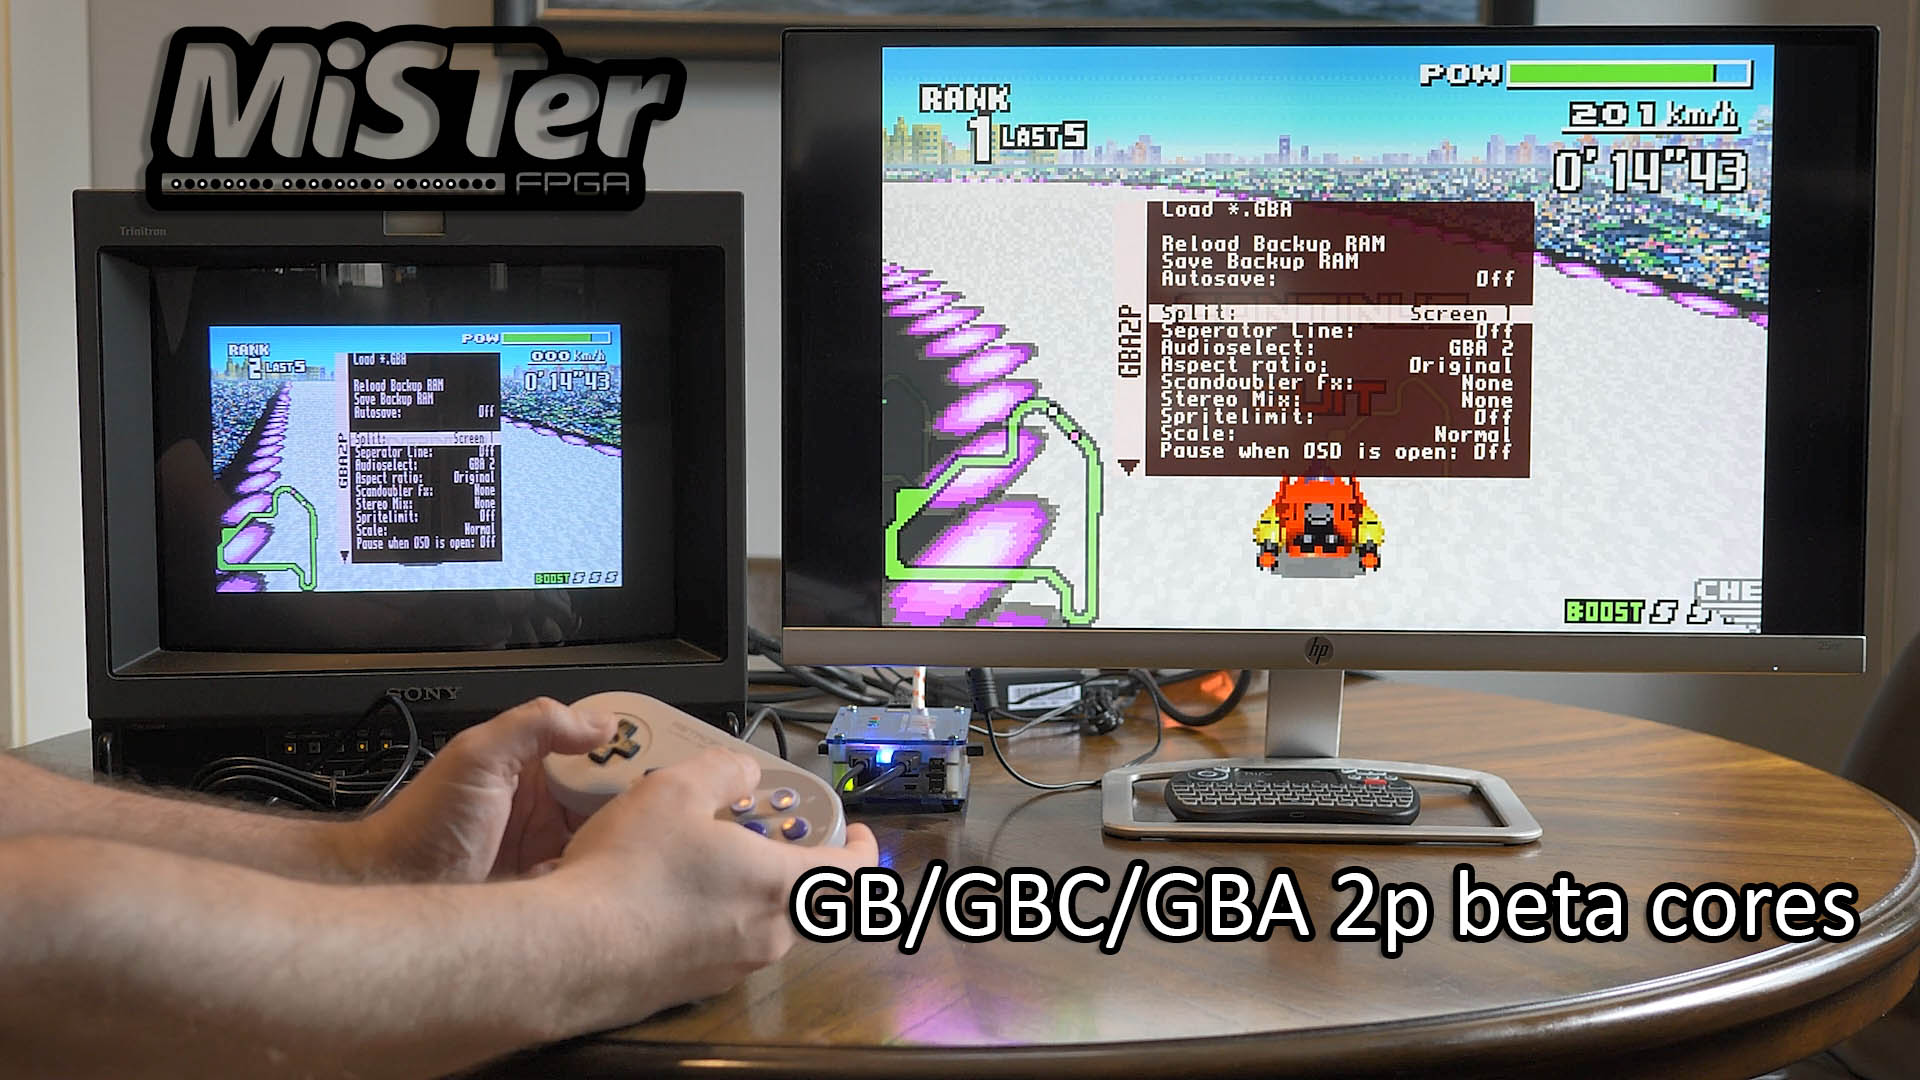 2-Player GB/GBC/GBA Custom Cores for MiSTer